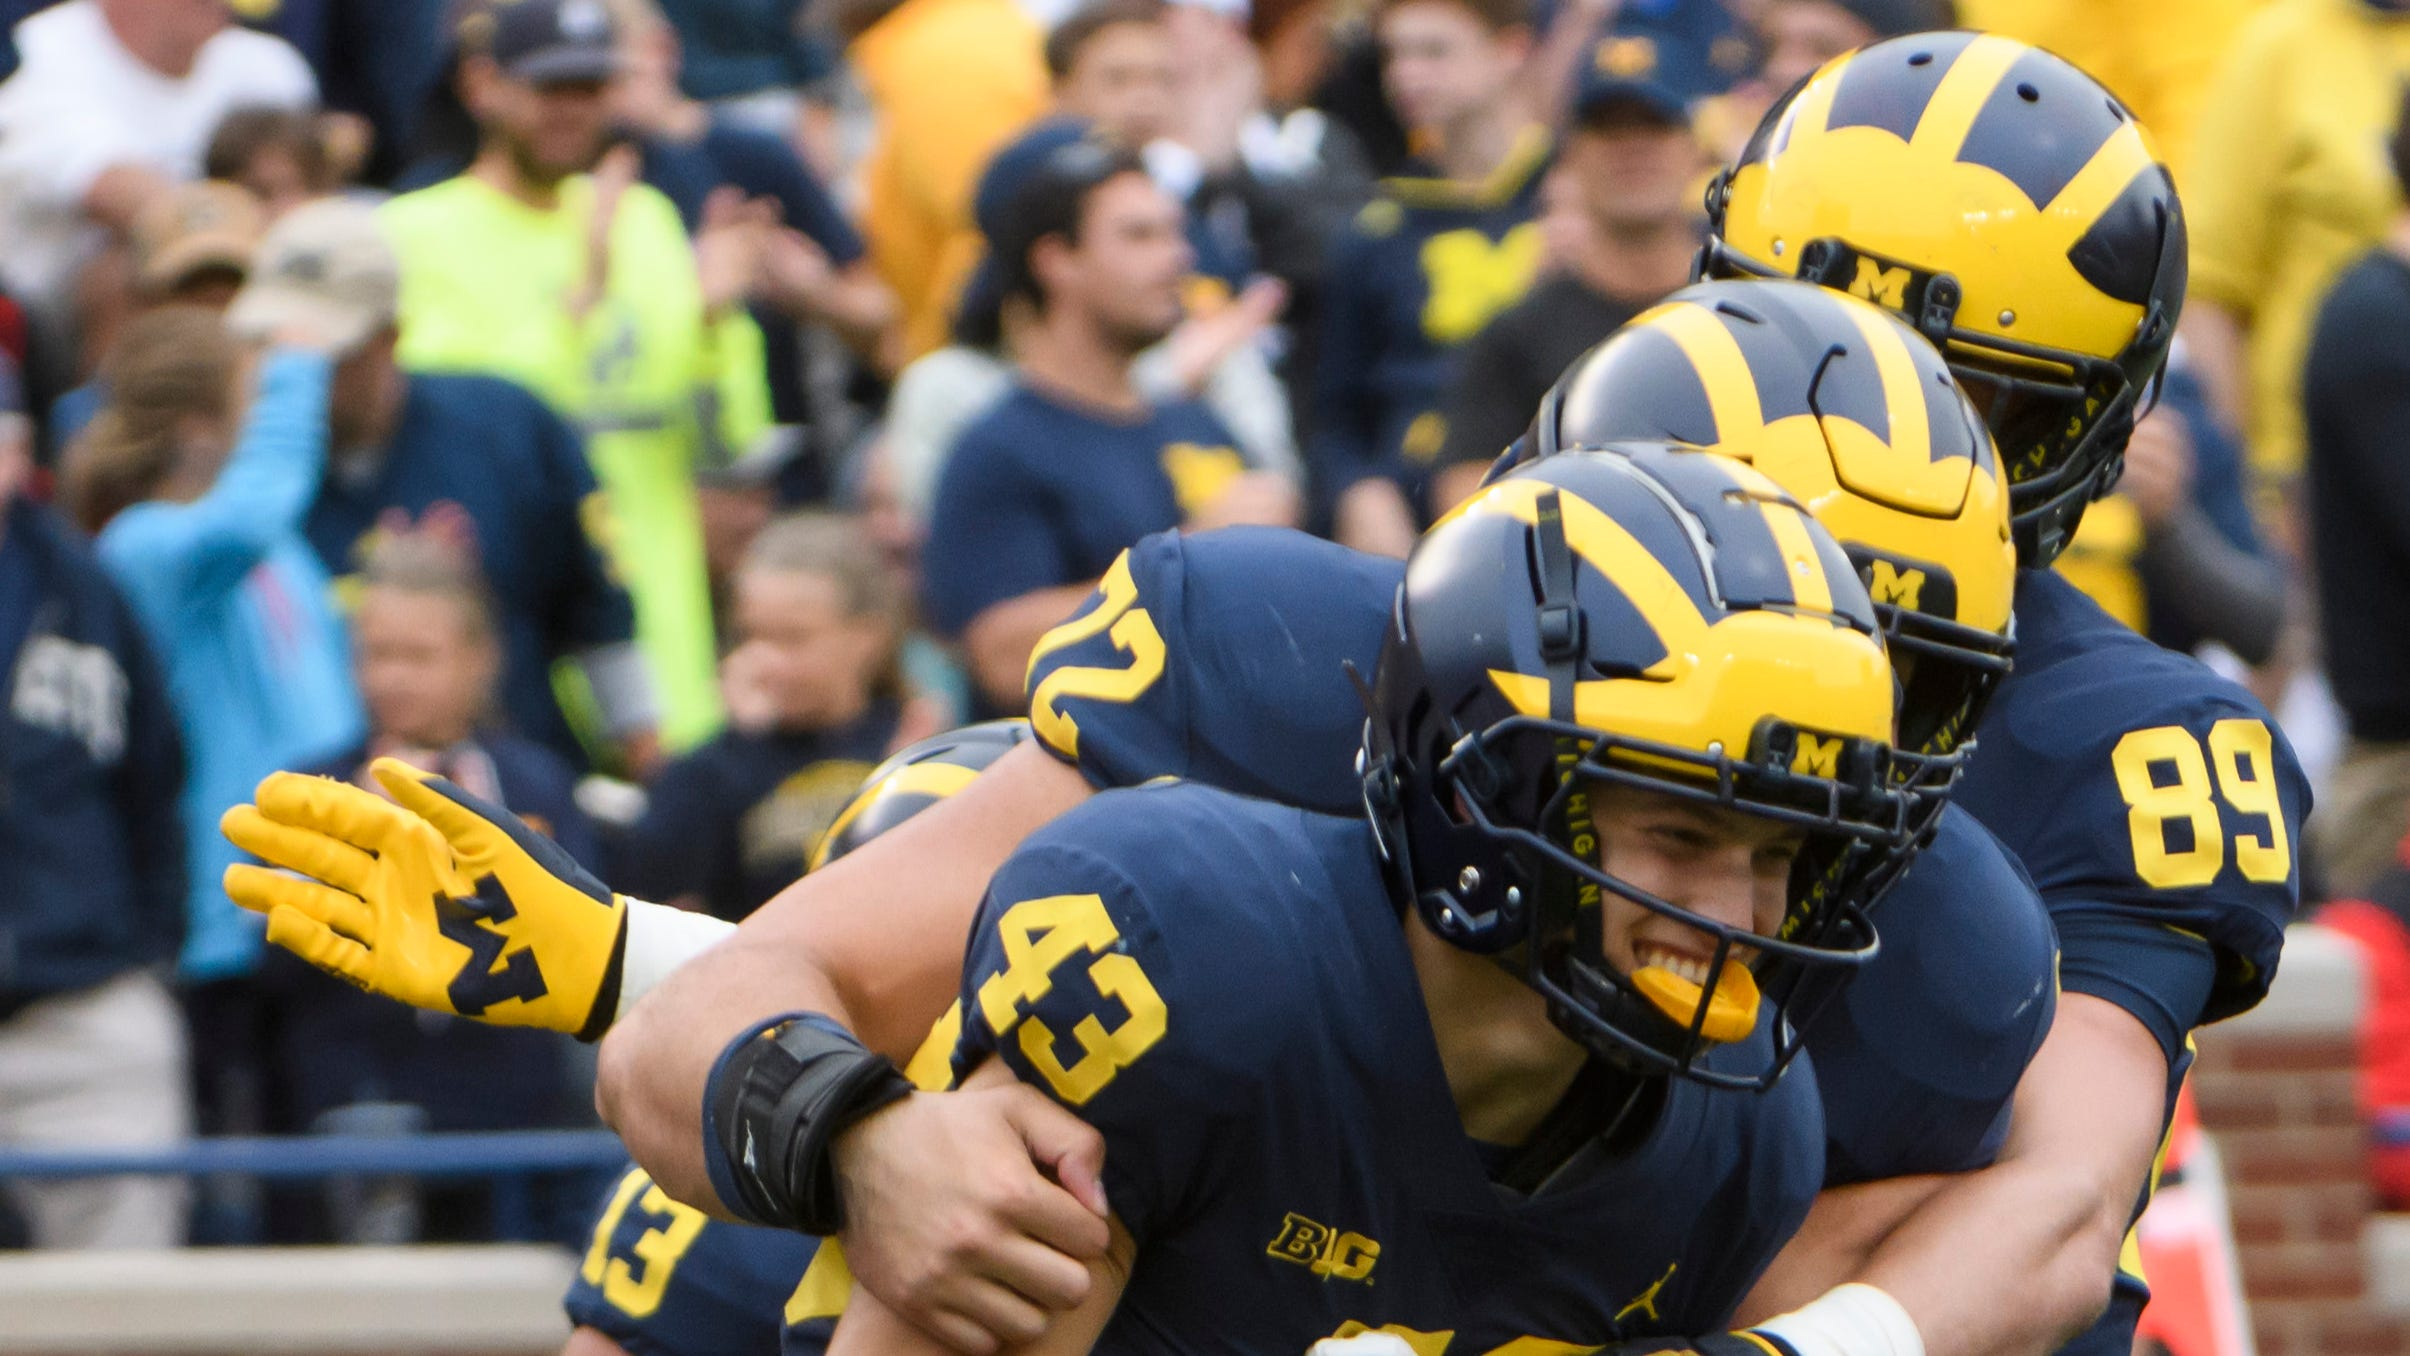 Wojo's Pigskin Picks: Michigan wants no cure for blowout fever